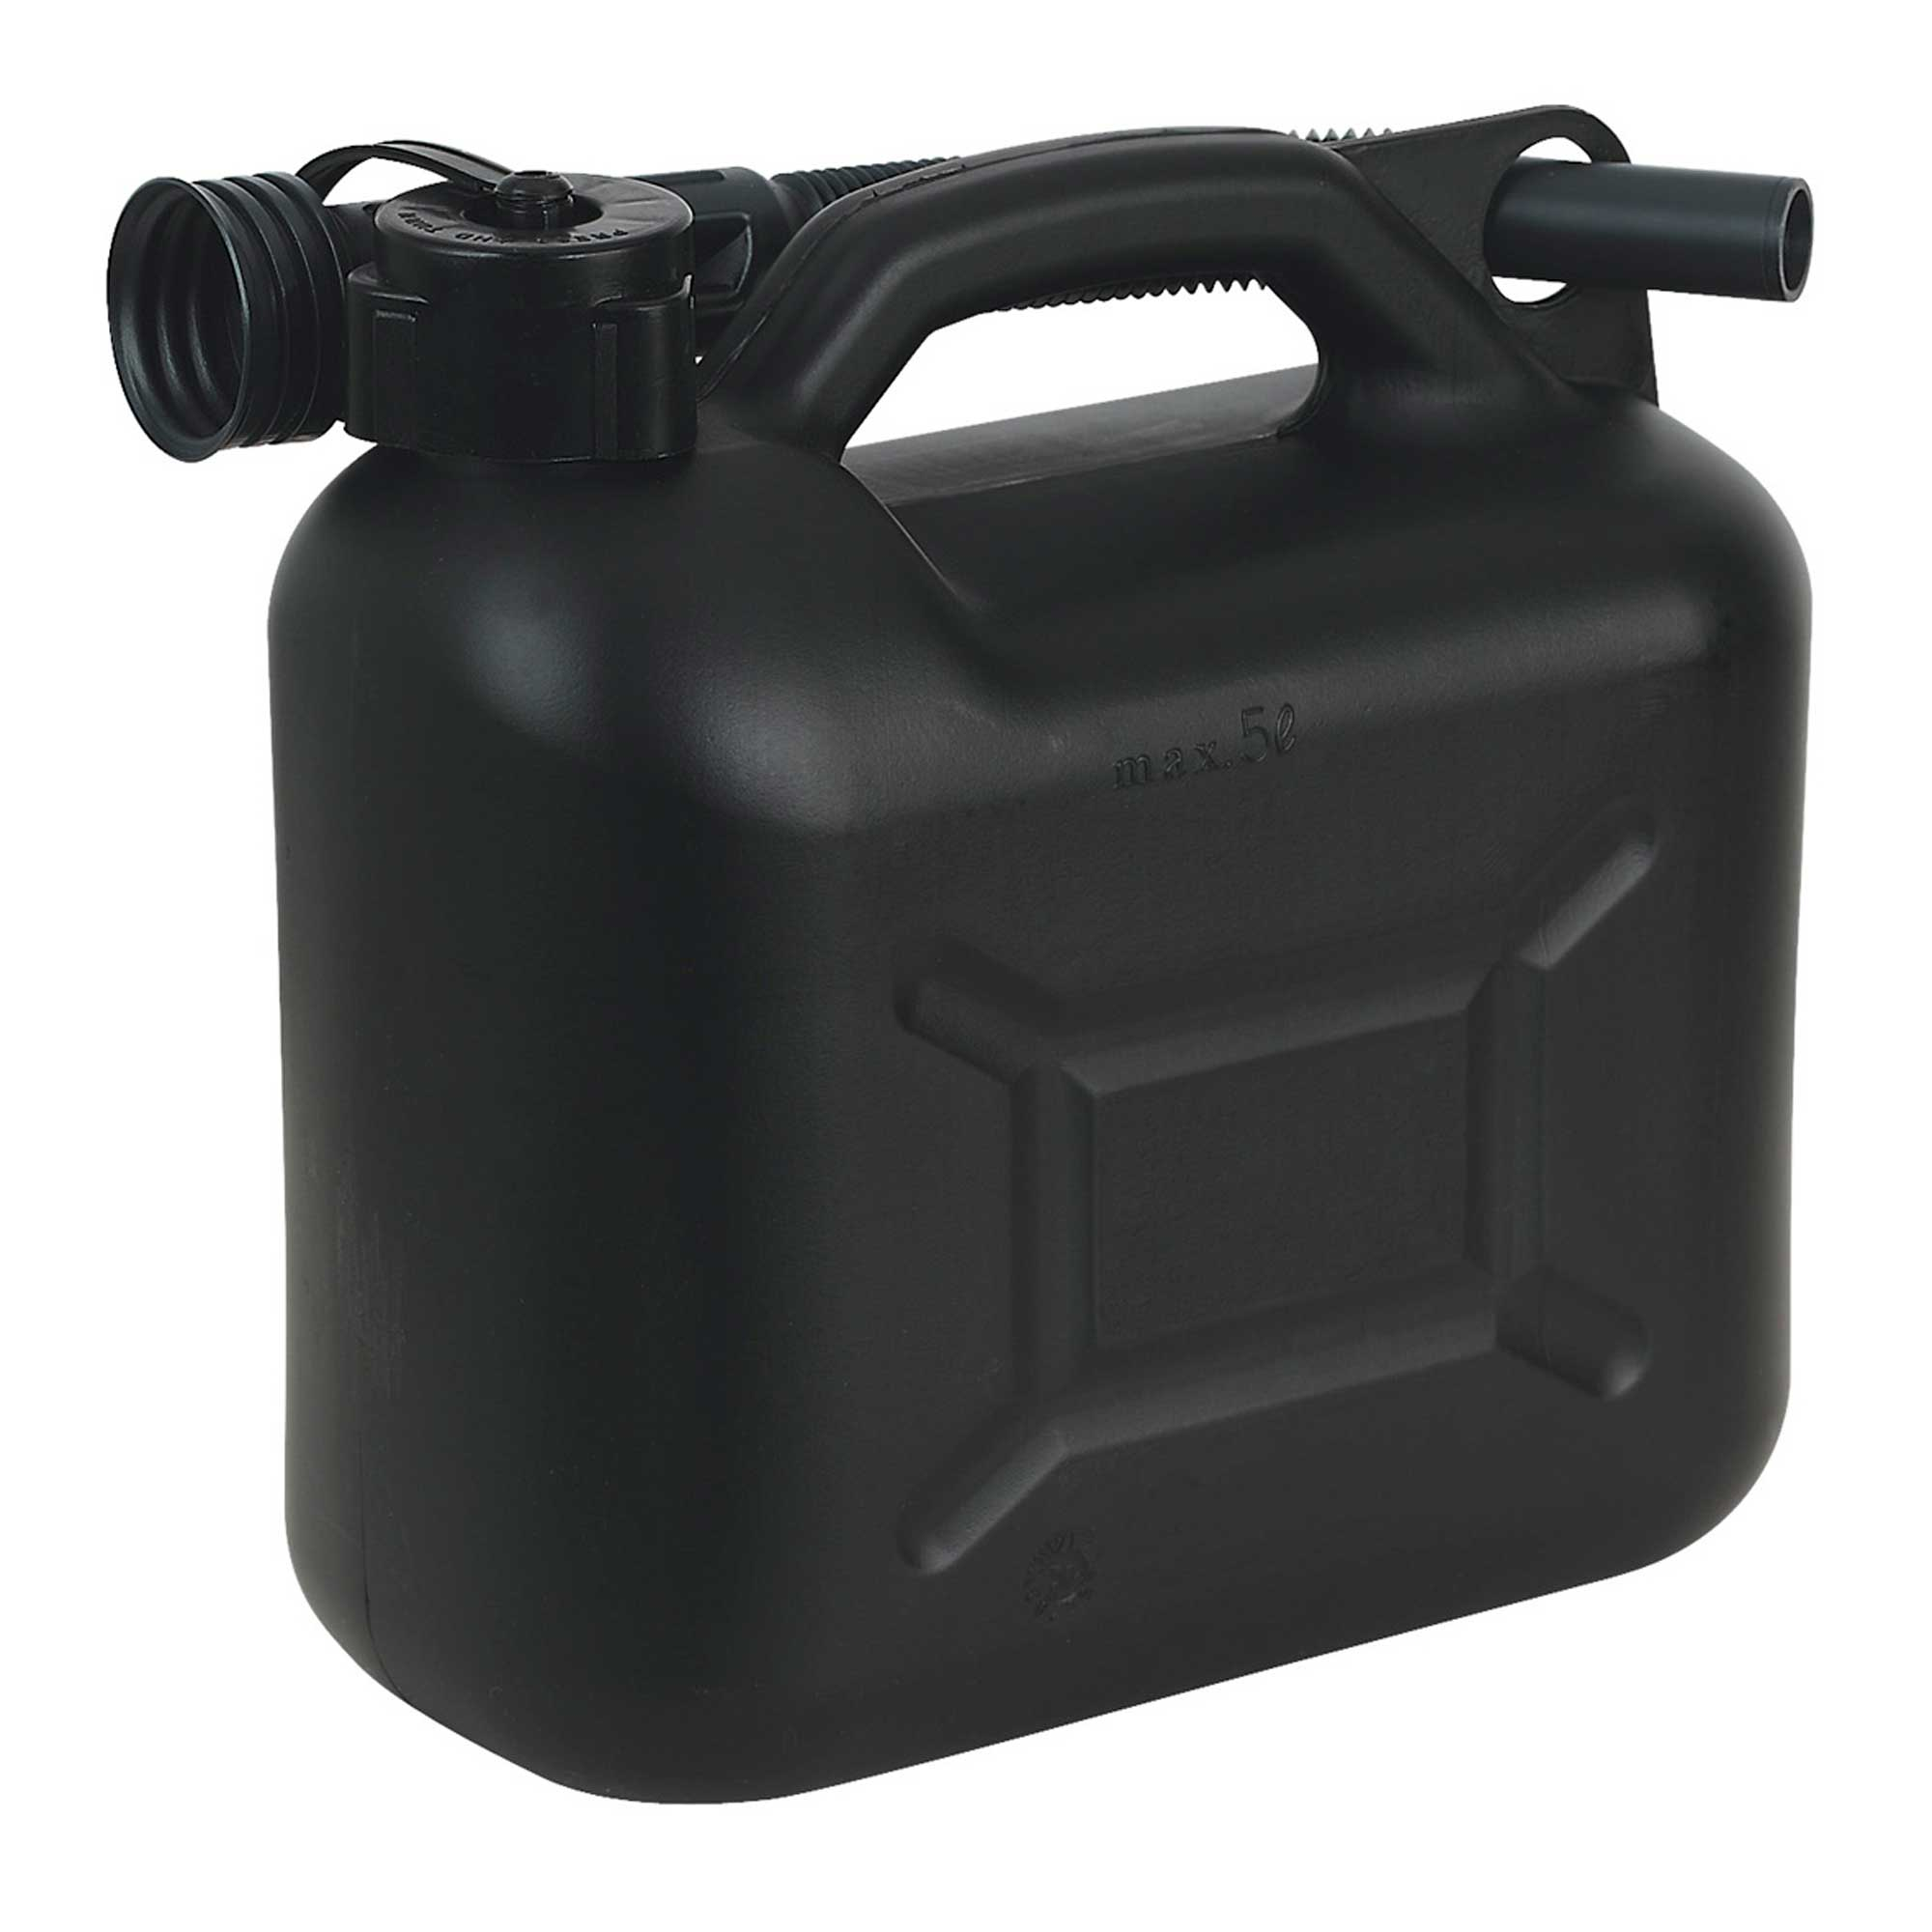 Black JC10PB Fuel Can 10ltr